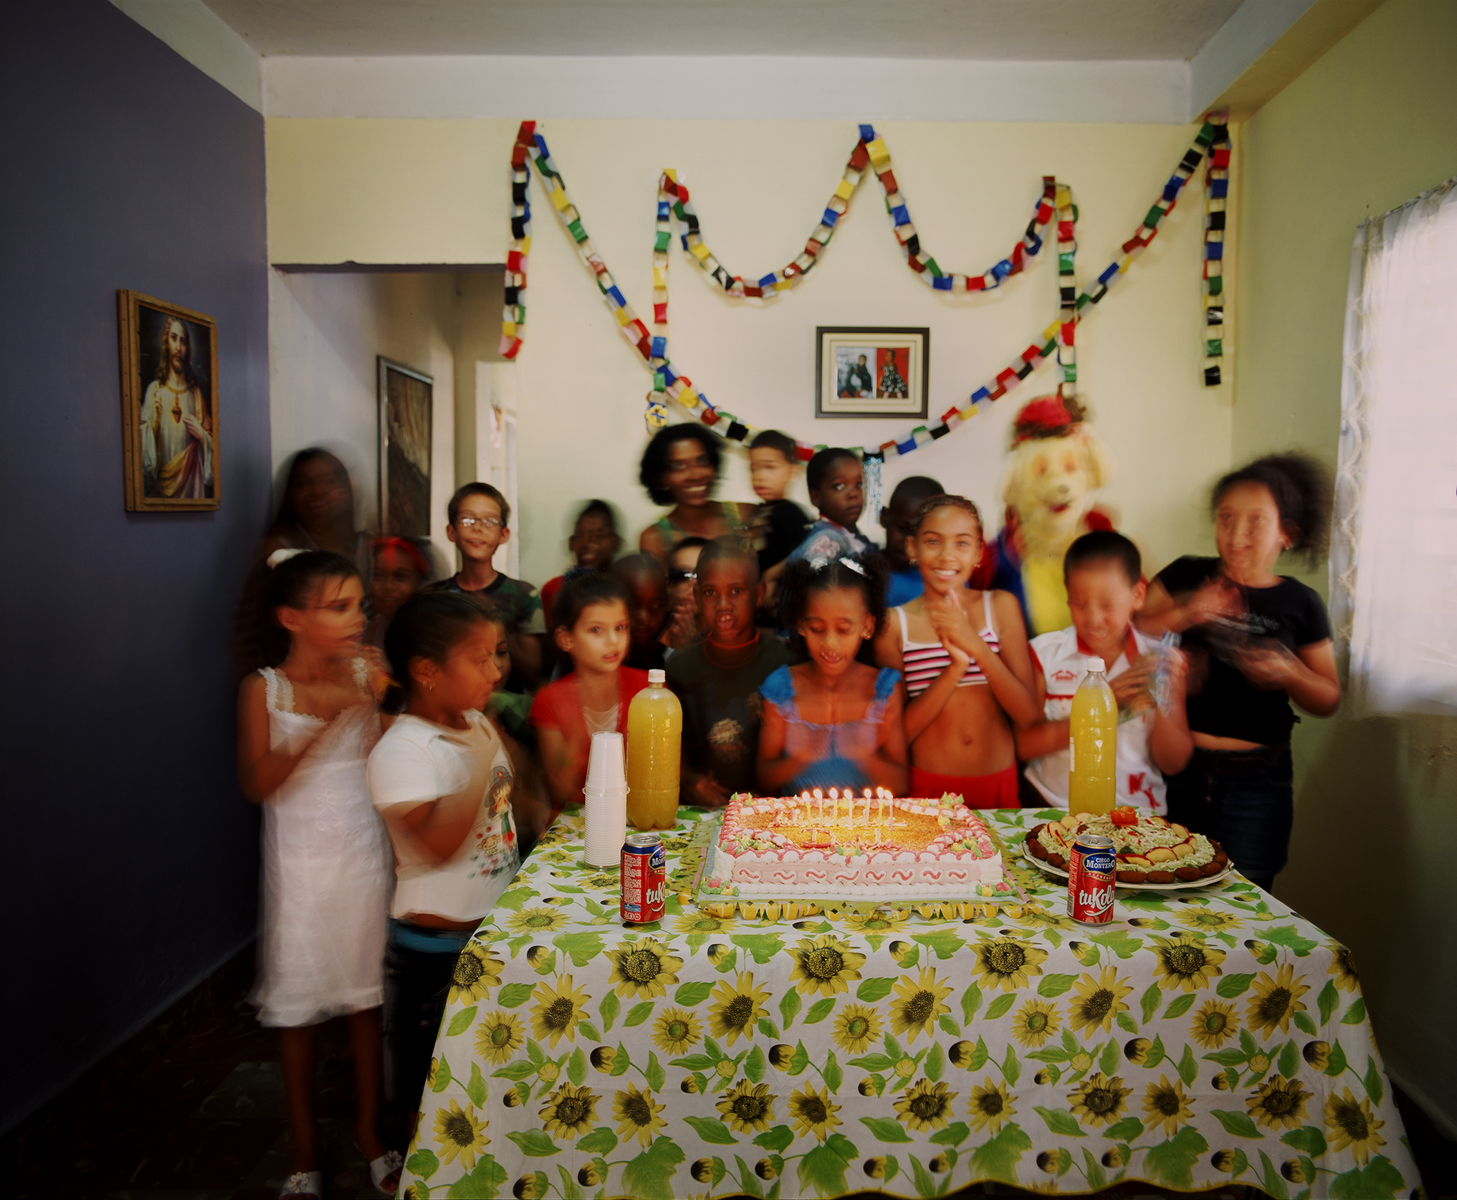 On December 26th, 2009, Daniella celebrates her seventh birthday amongst family and friends. Cotorro, Havana, Cuba